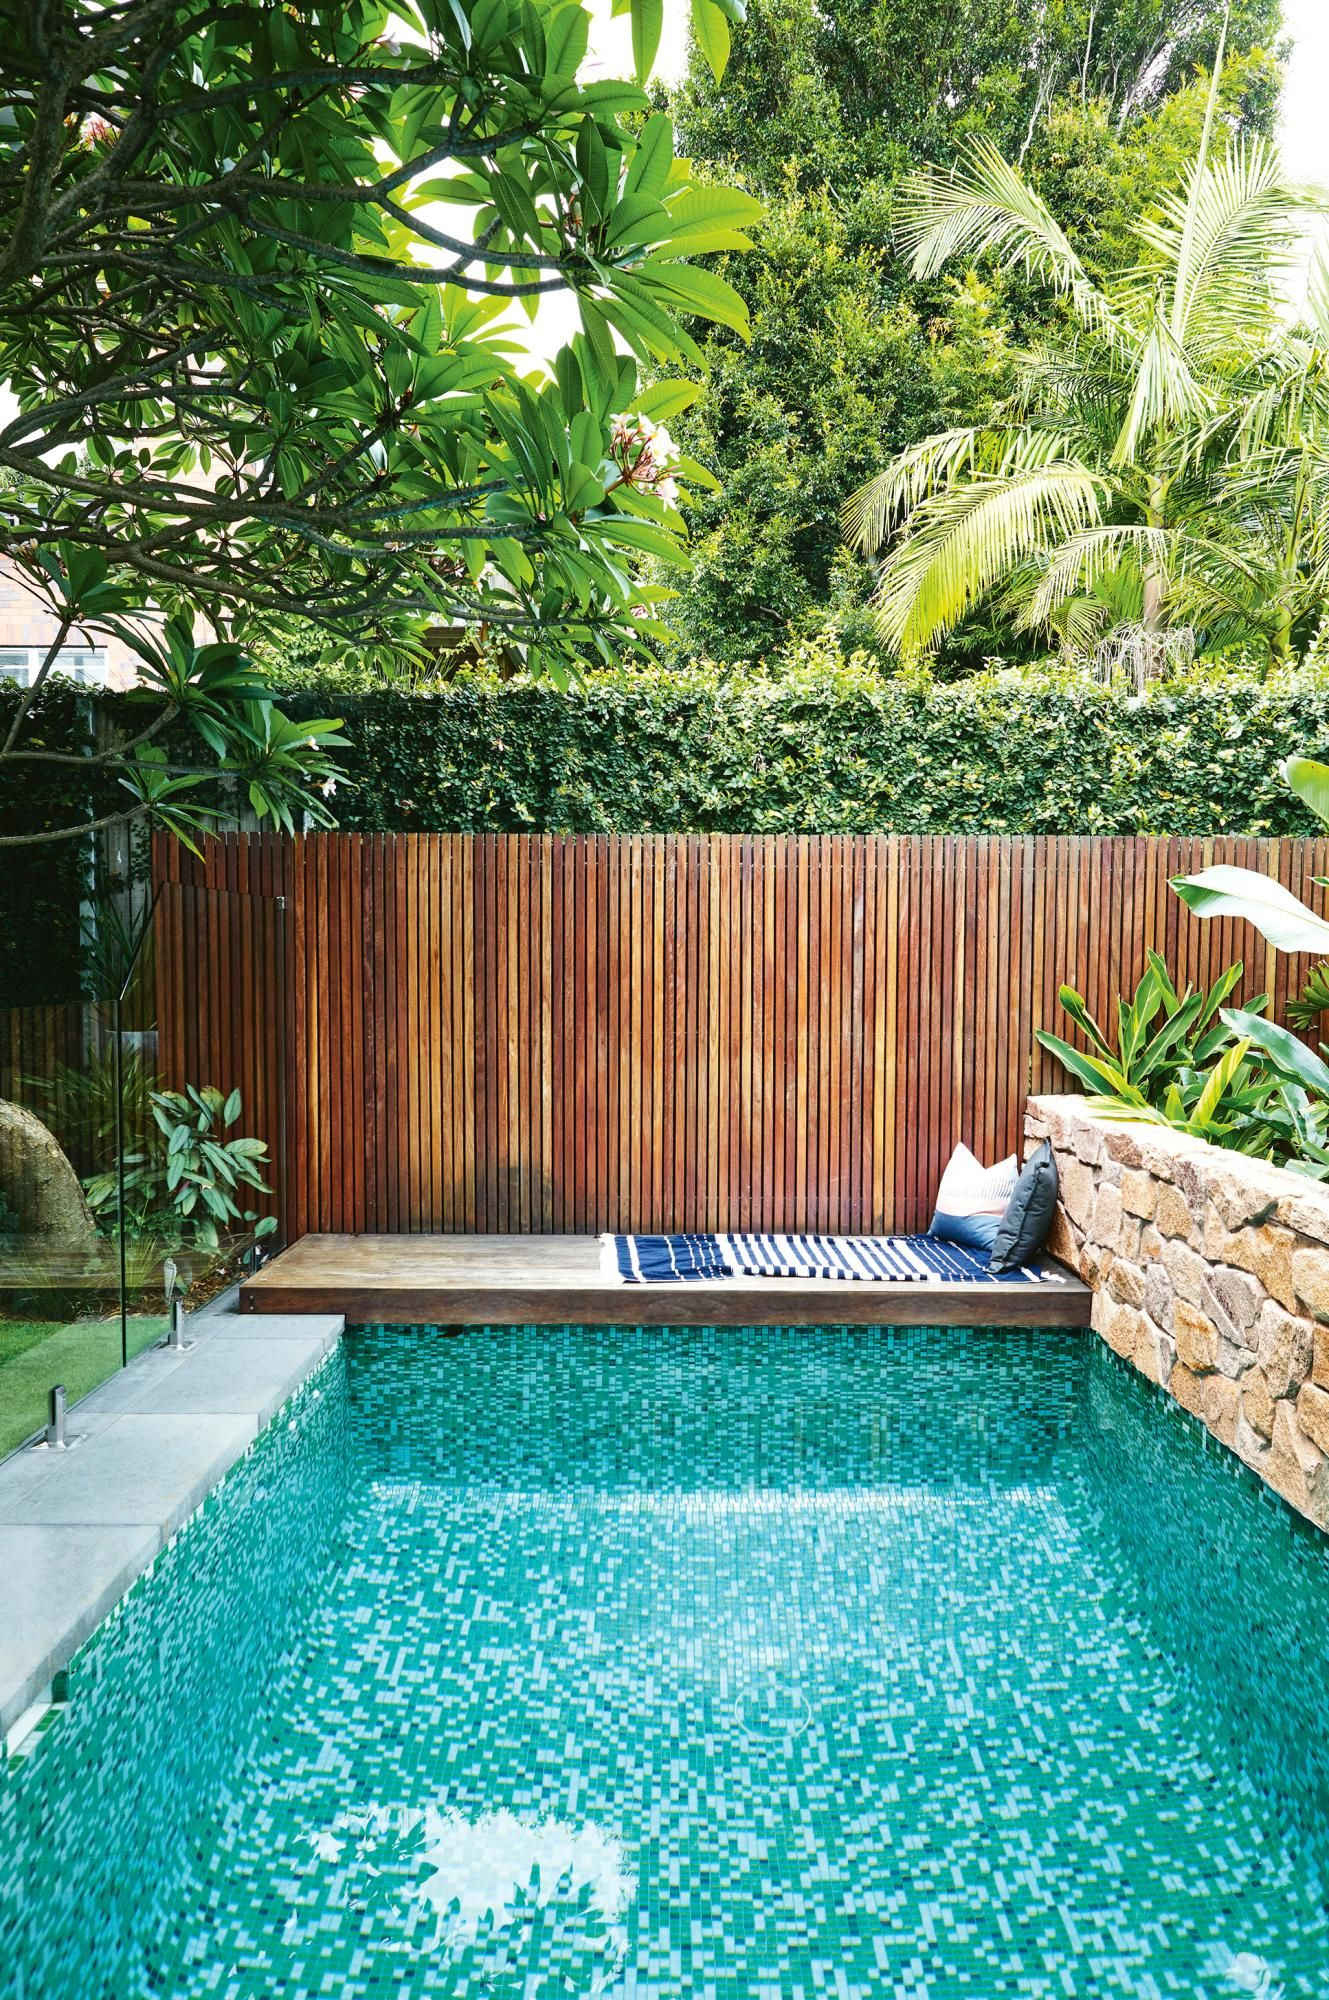 Compass Pool Im Garten This Compact Sydney Garden Is Inspired By Bali Swimming Pools